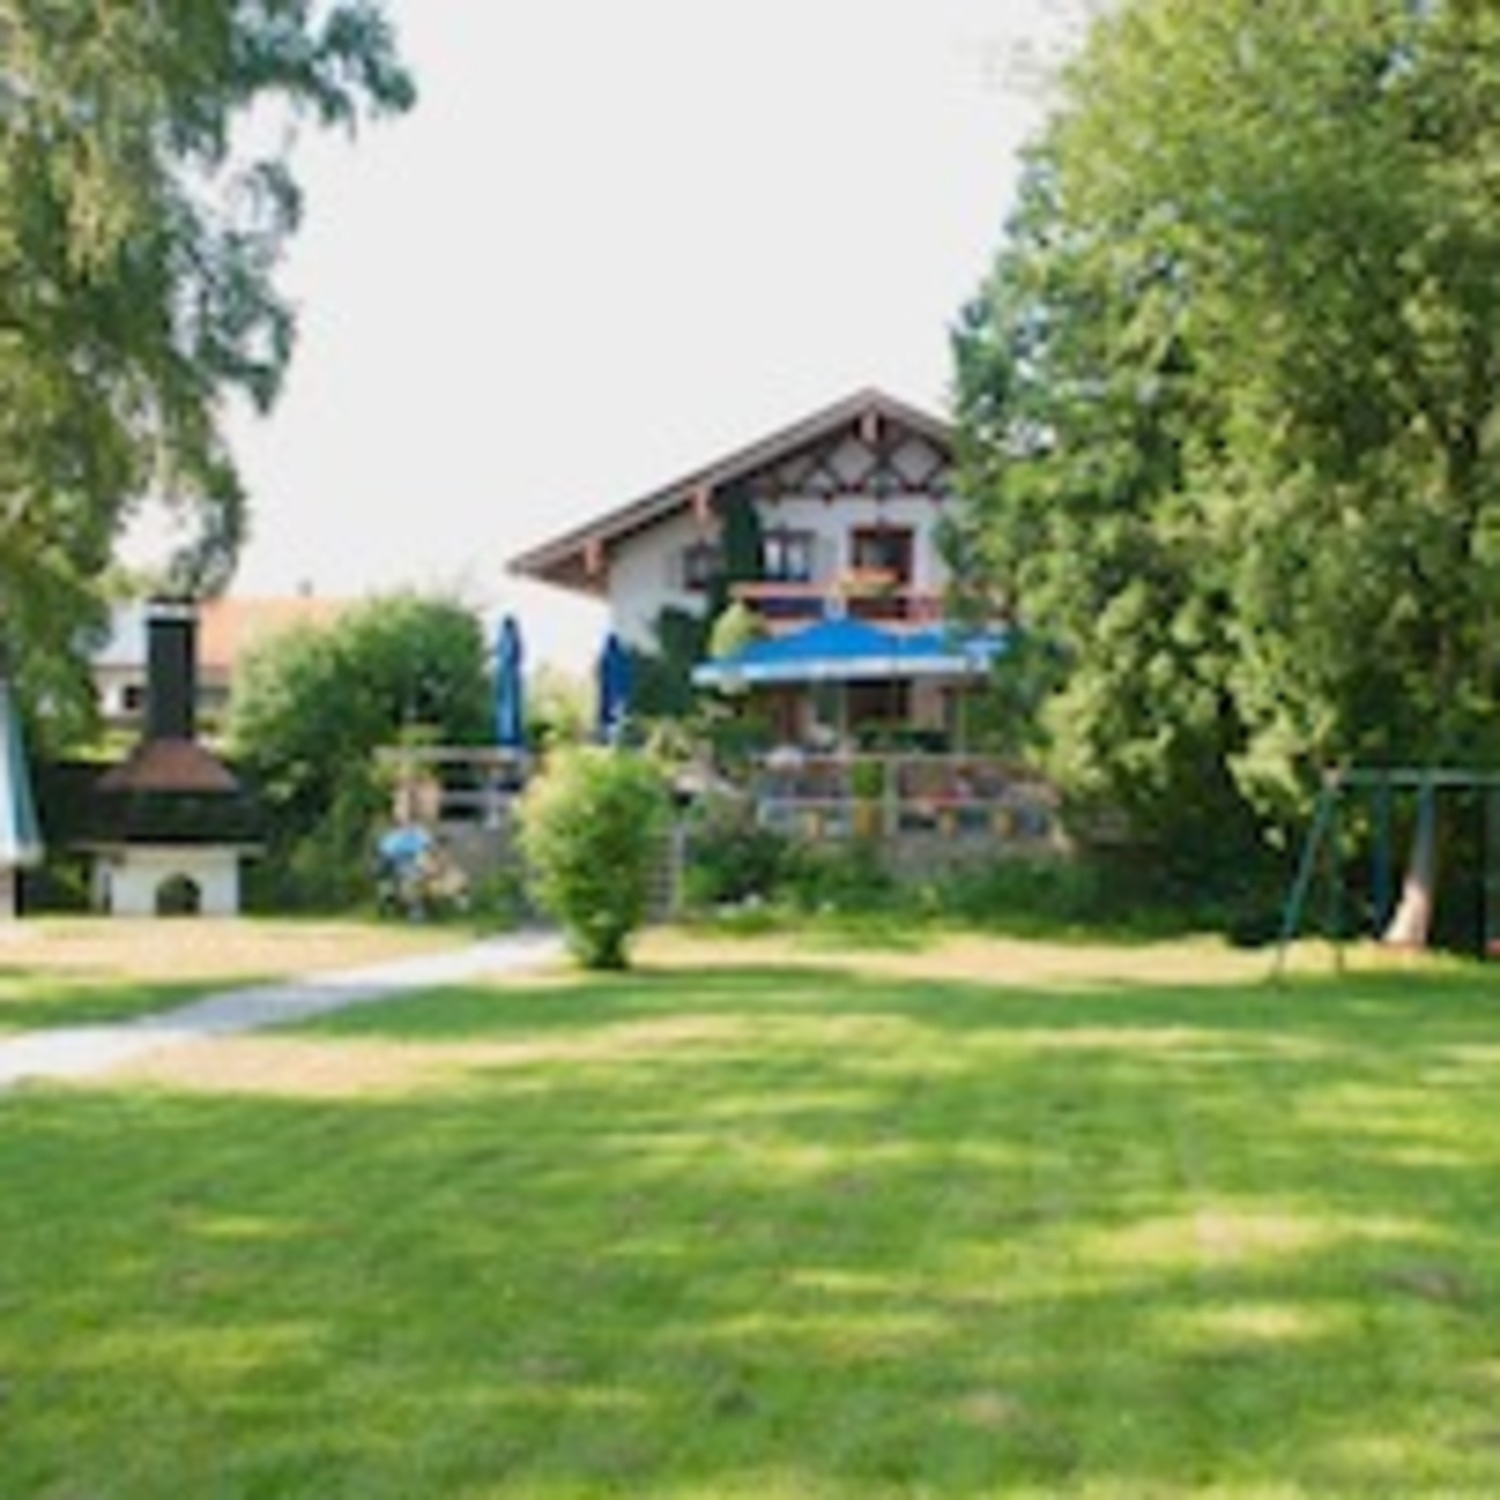 Casa Bad Aibling pension gasthaus fledermaus term room in bad aibling gloveler